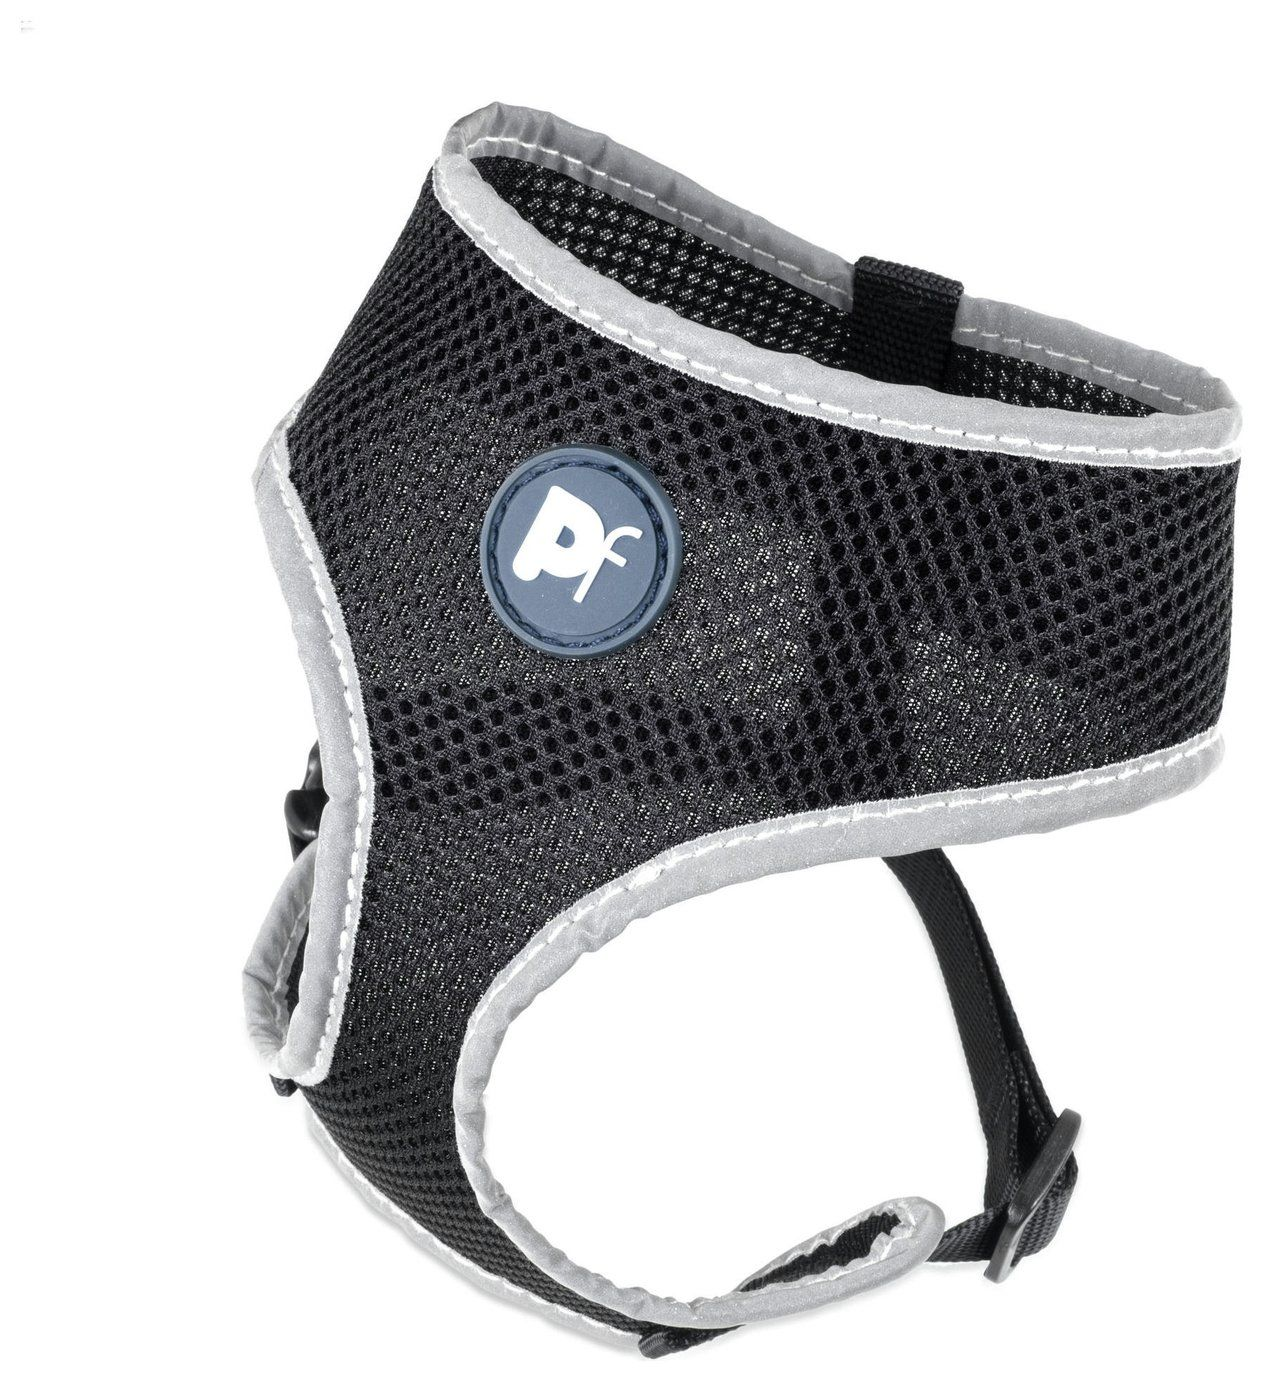 Petface Large Comfort Dog Harness In 2020 Dog Harness Padded